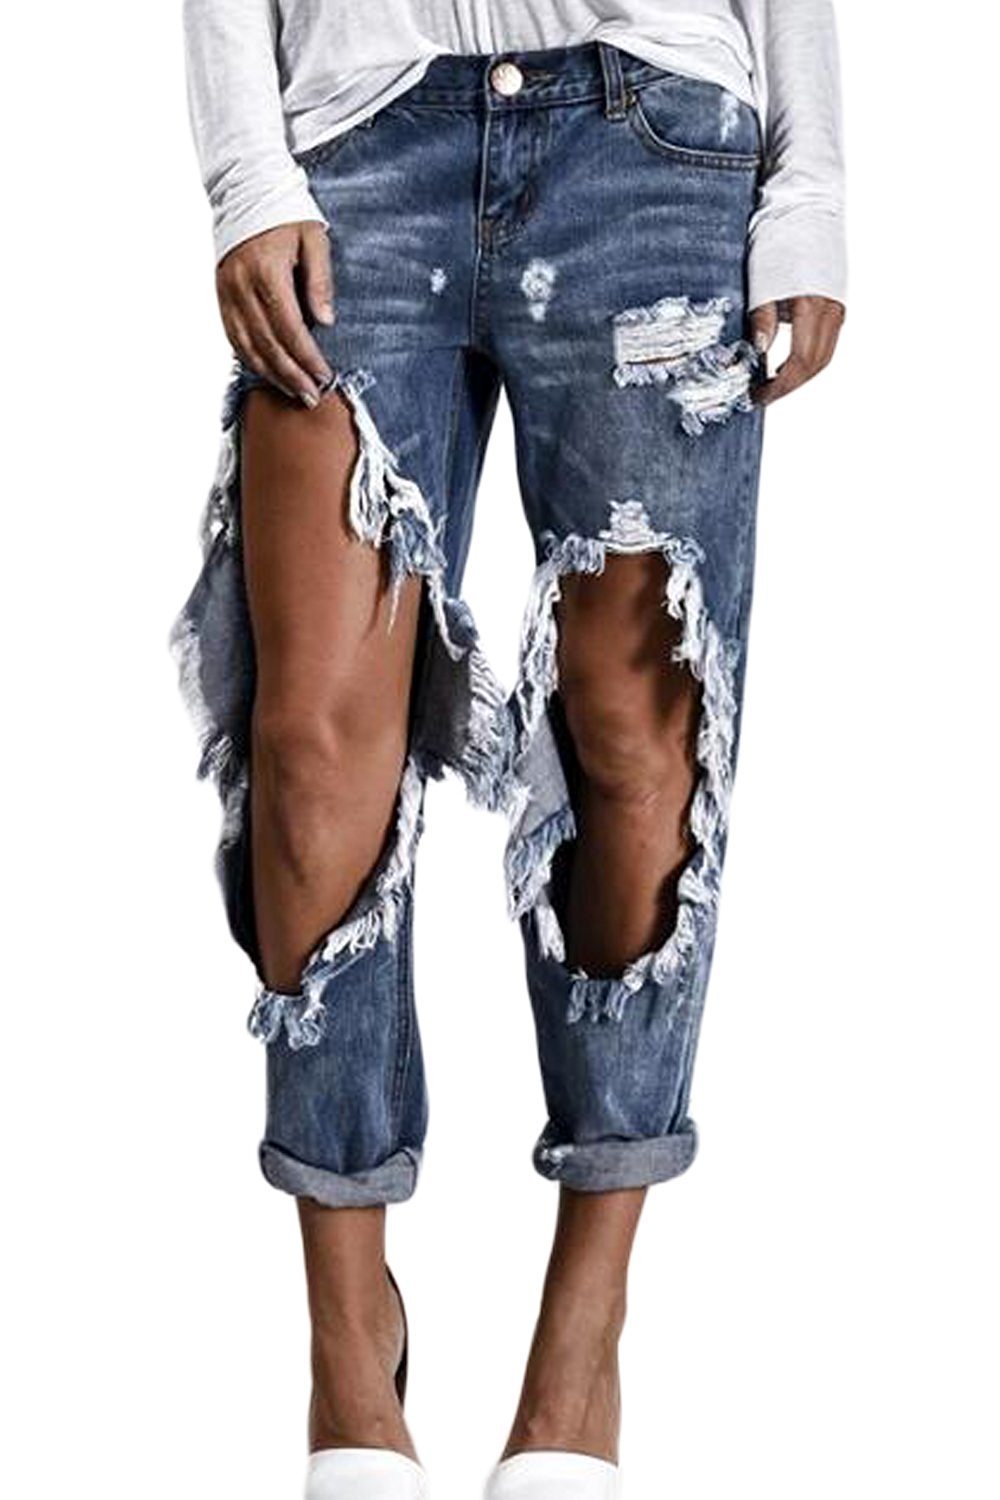 d7e405e71ec1e Get Quotations · Women Casual Hollow Out Ripped Hole Distressed Jeans  Bodycon Boyfriend Style Pants